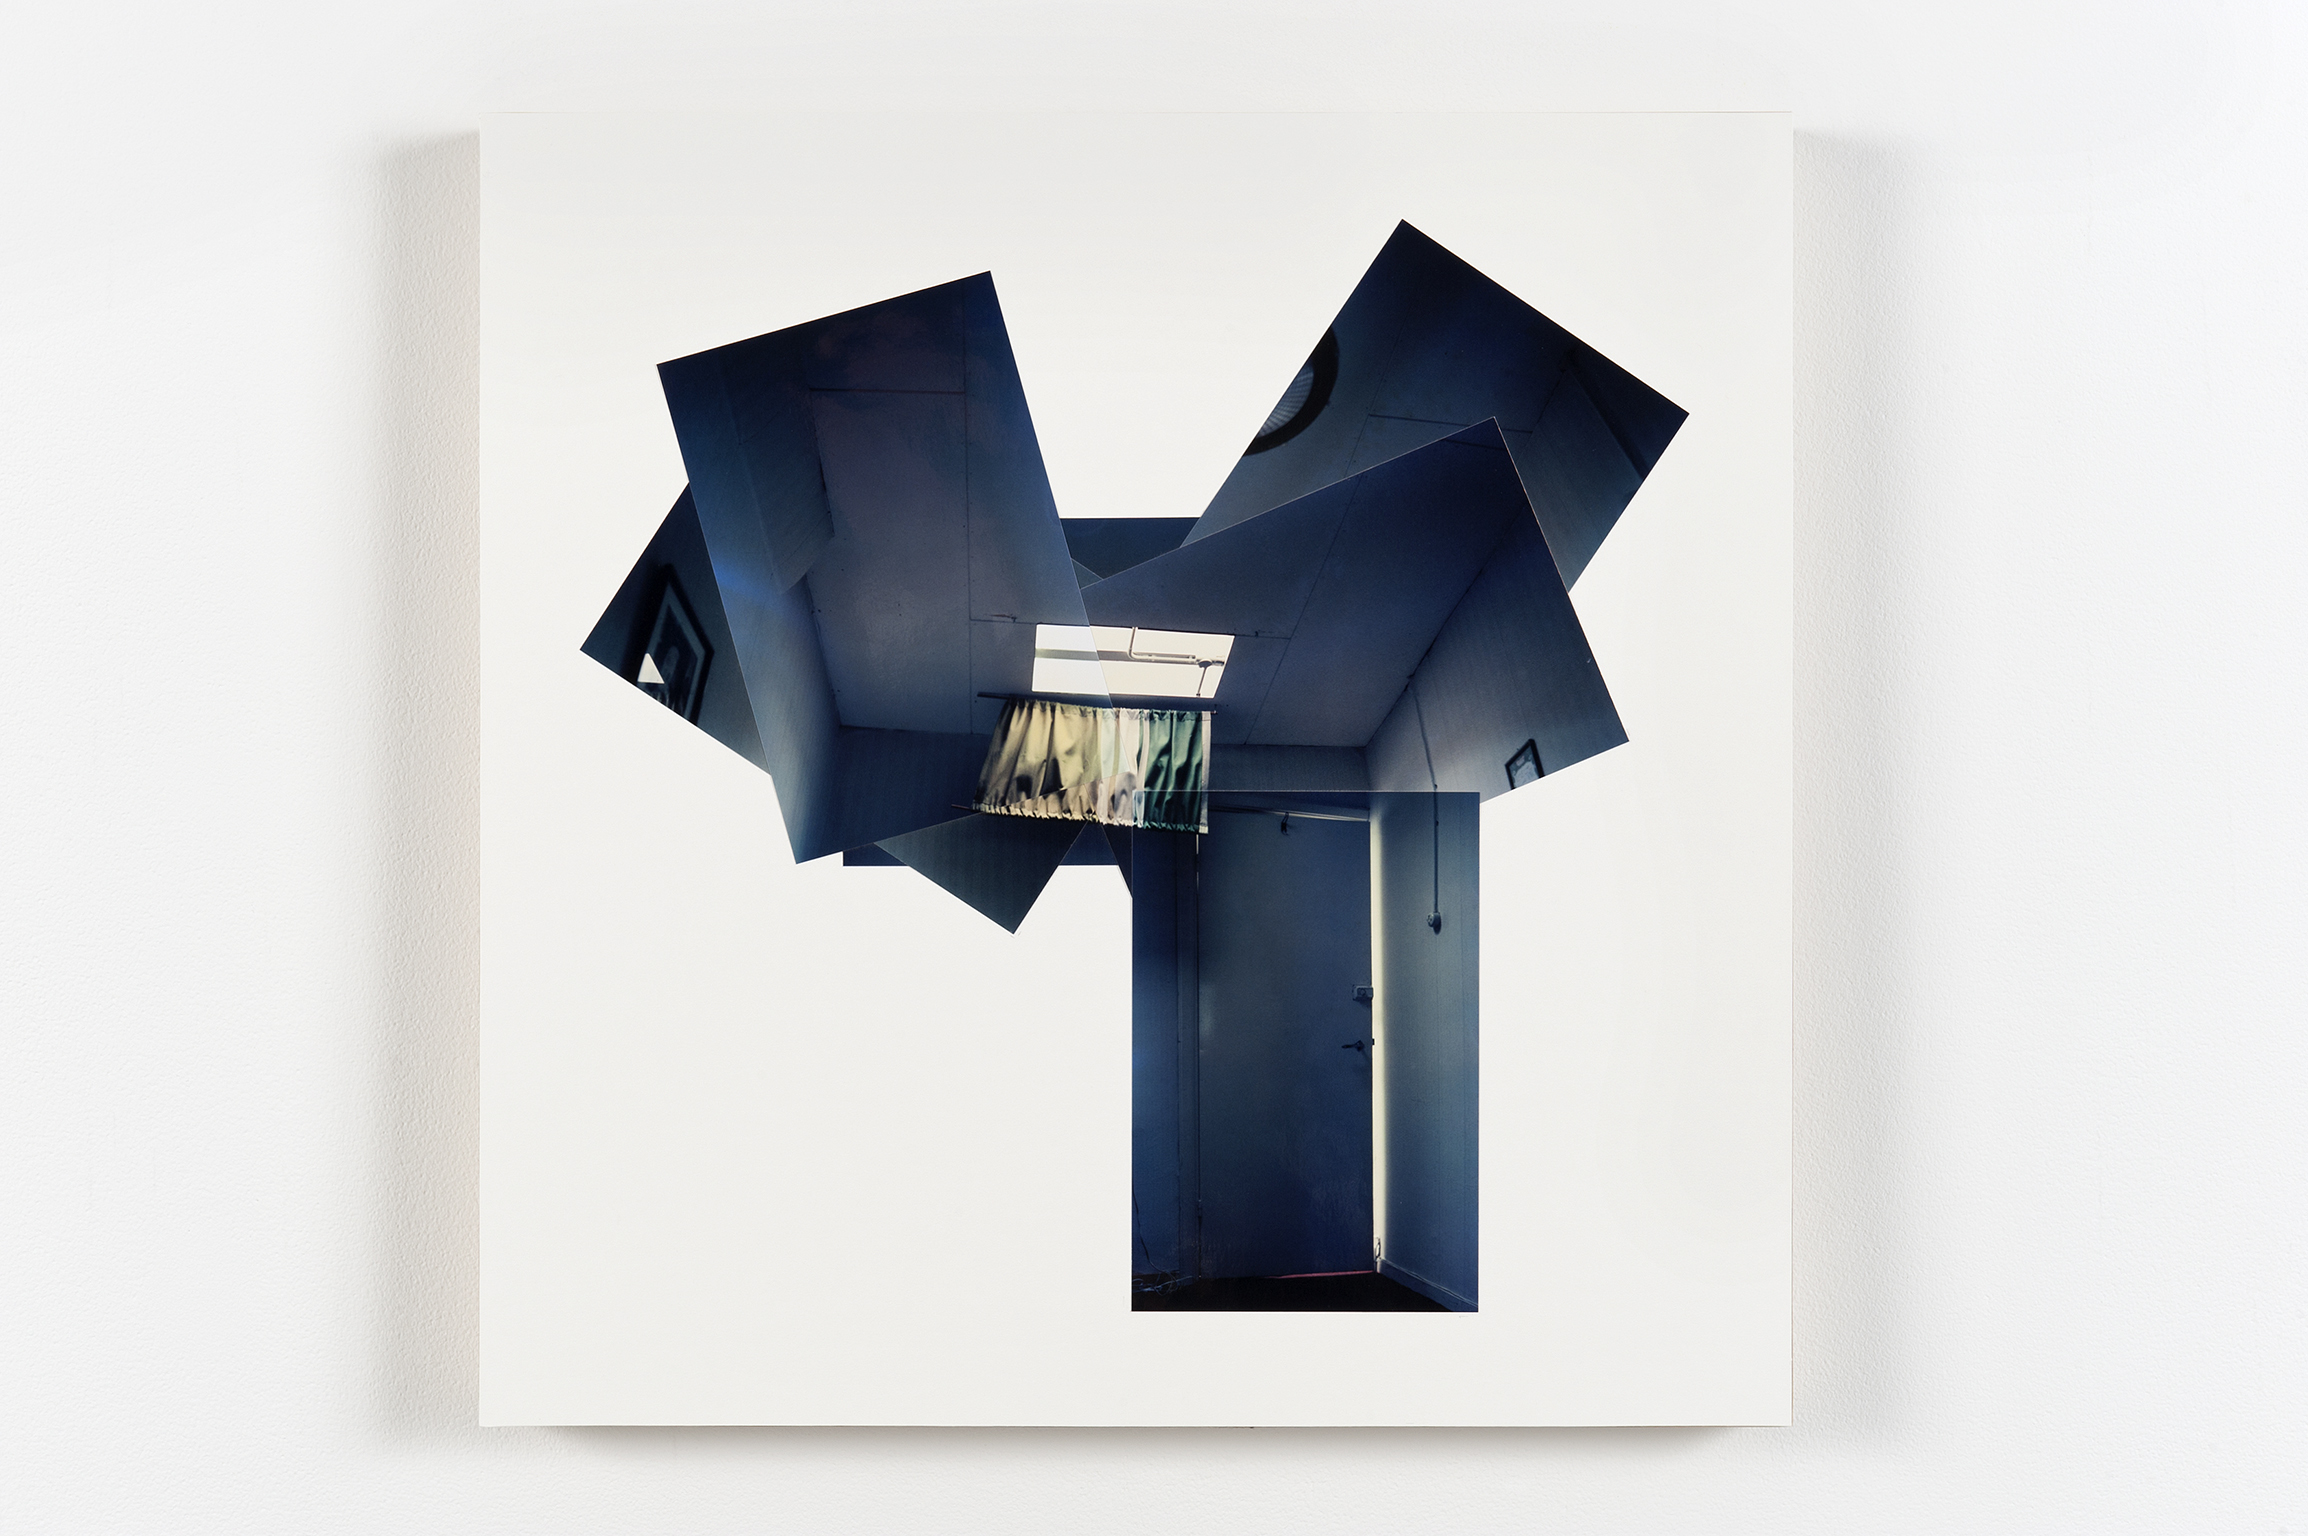 ​Robert Kleyn, Ceiling Pan, 1978, colour photographs on illustration board, 19 x 19 in. (48 x 48 cm) by